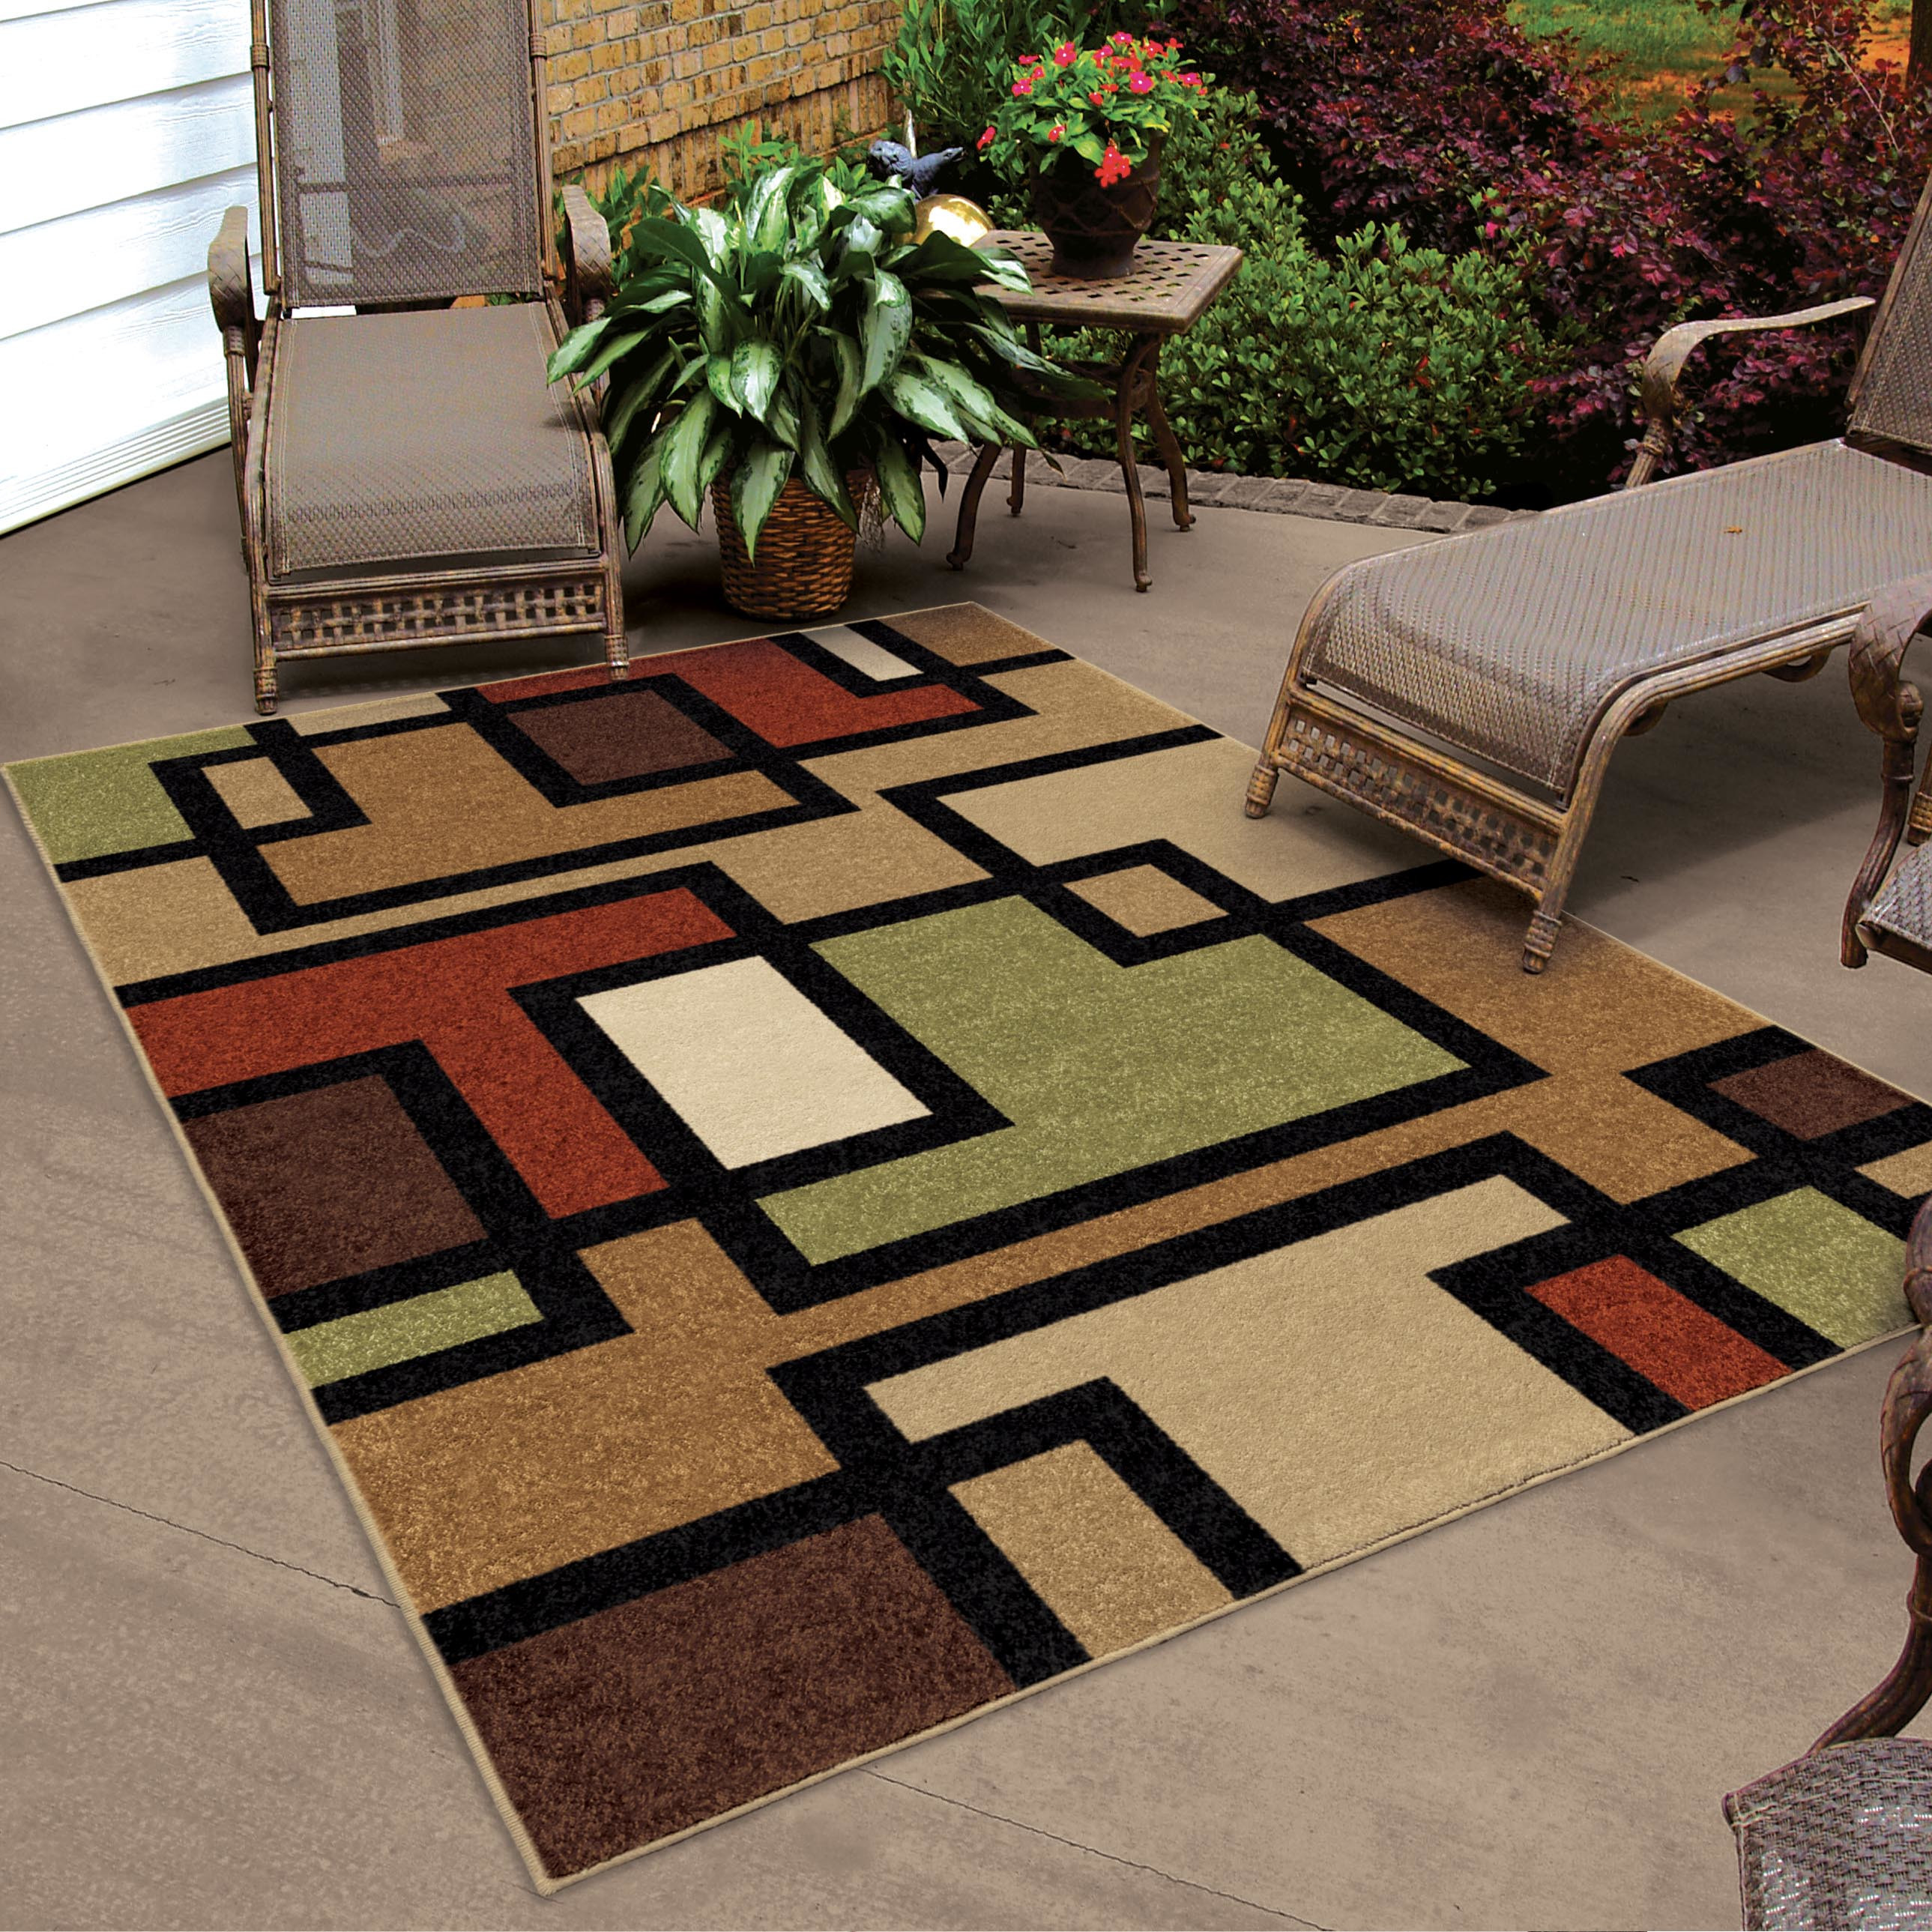 Best ideas about Outdoor Area Rugs . Save or Pin Threadbind Thorne Brown Indoor Outdoor Area Rug & Reviews Now.